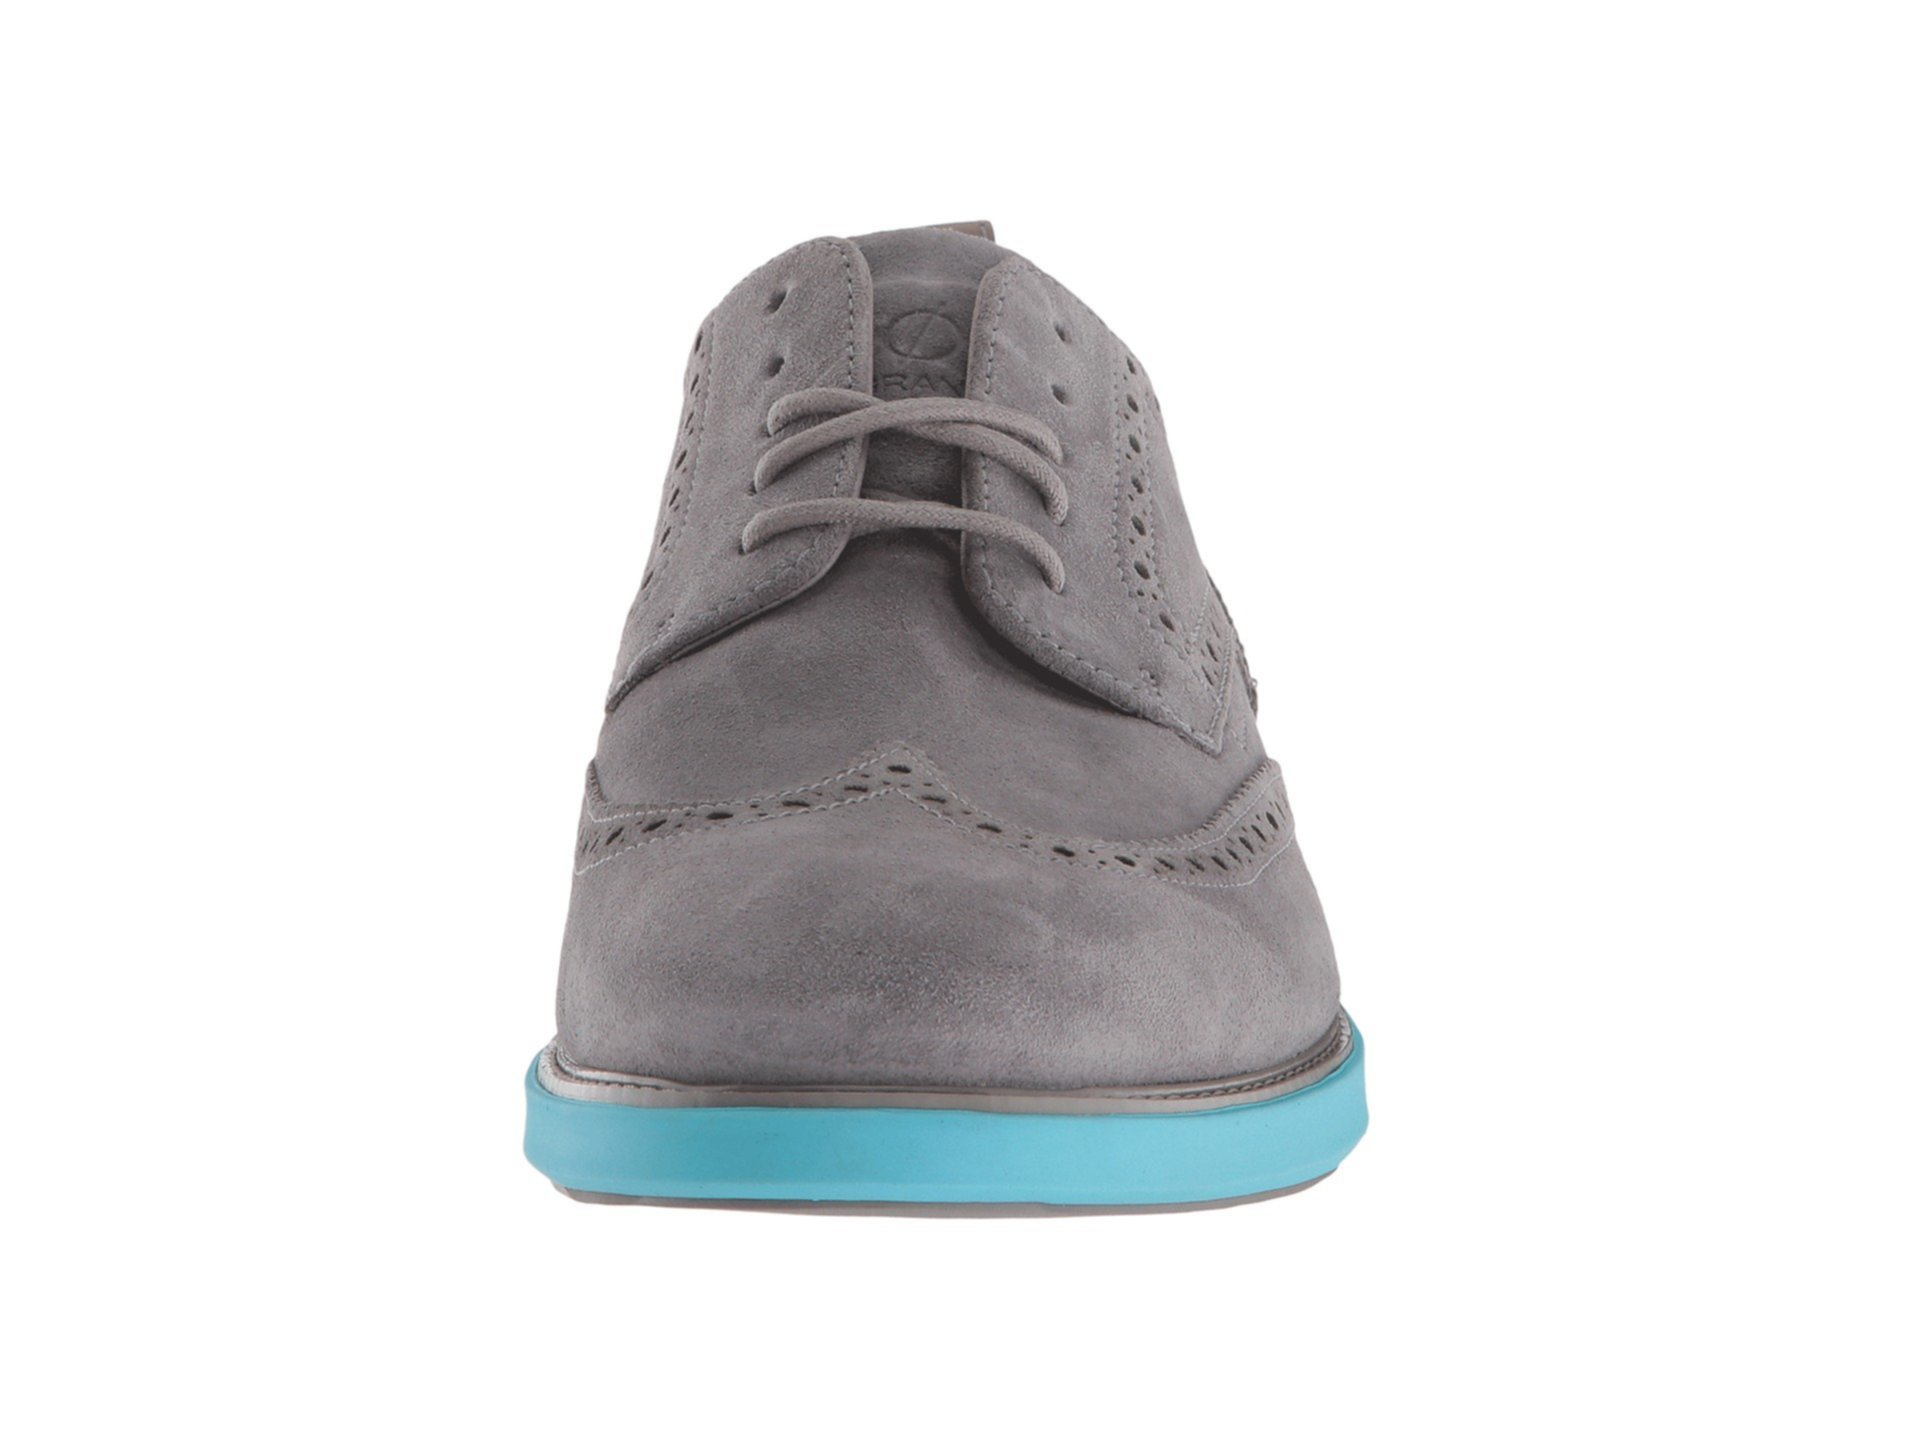 Grand Evolution Shortwing Cole Haan